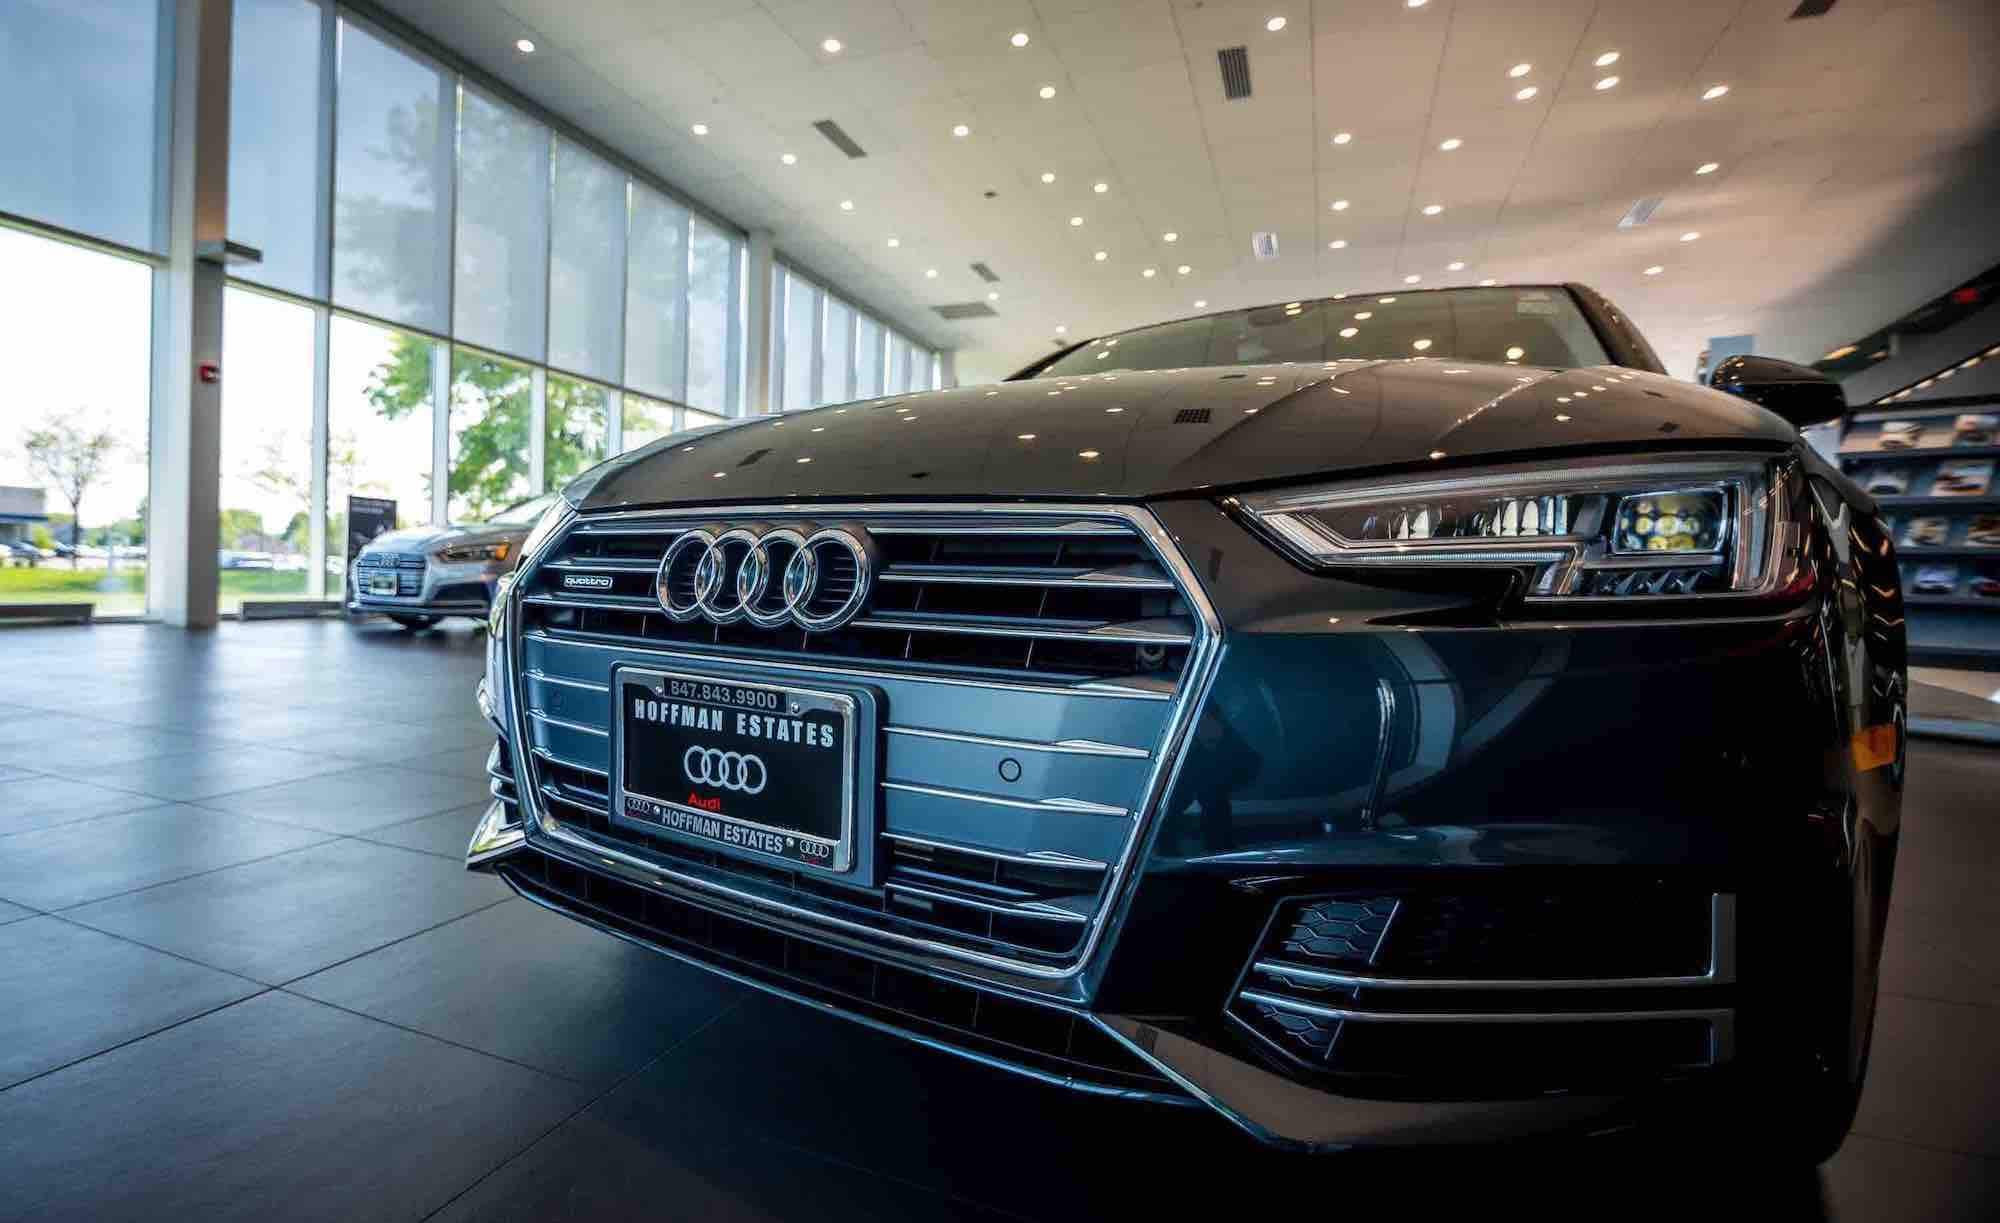 Audi Hoffman Estates Showroom and Interior